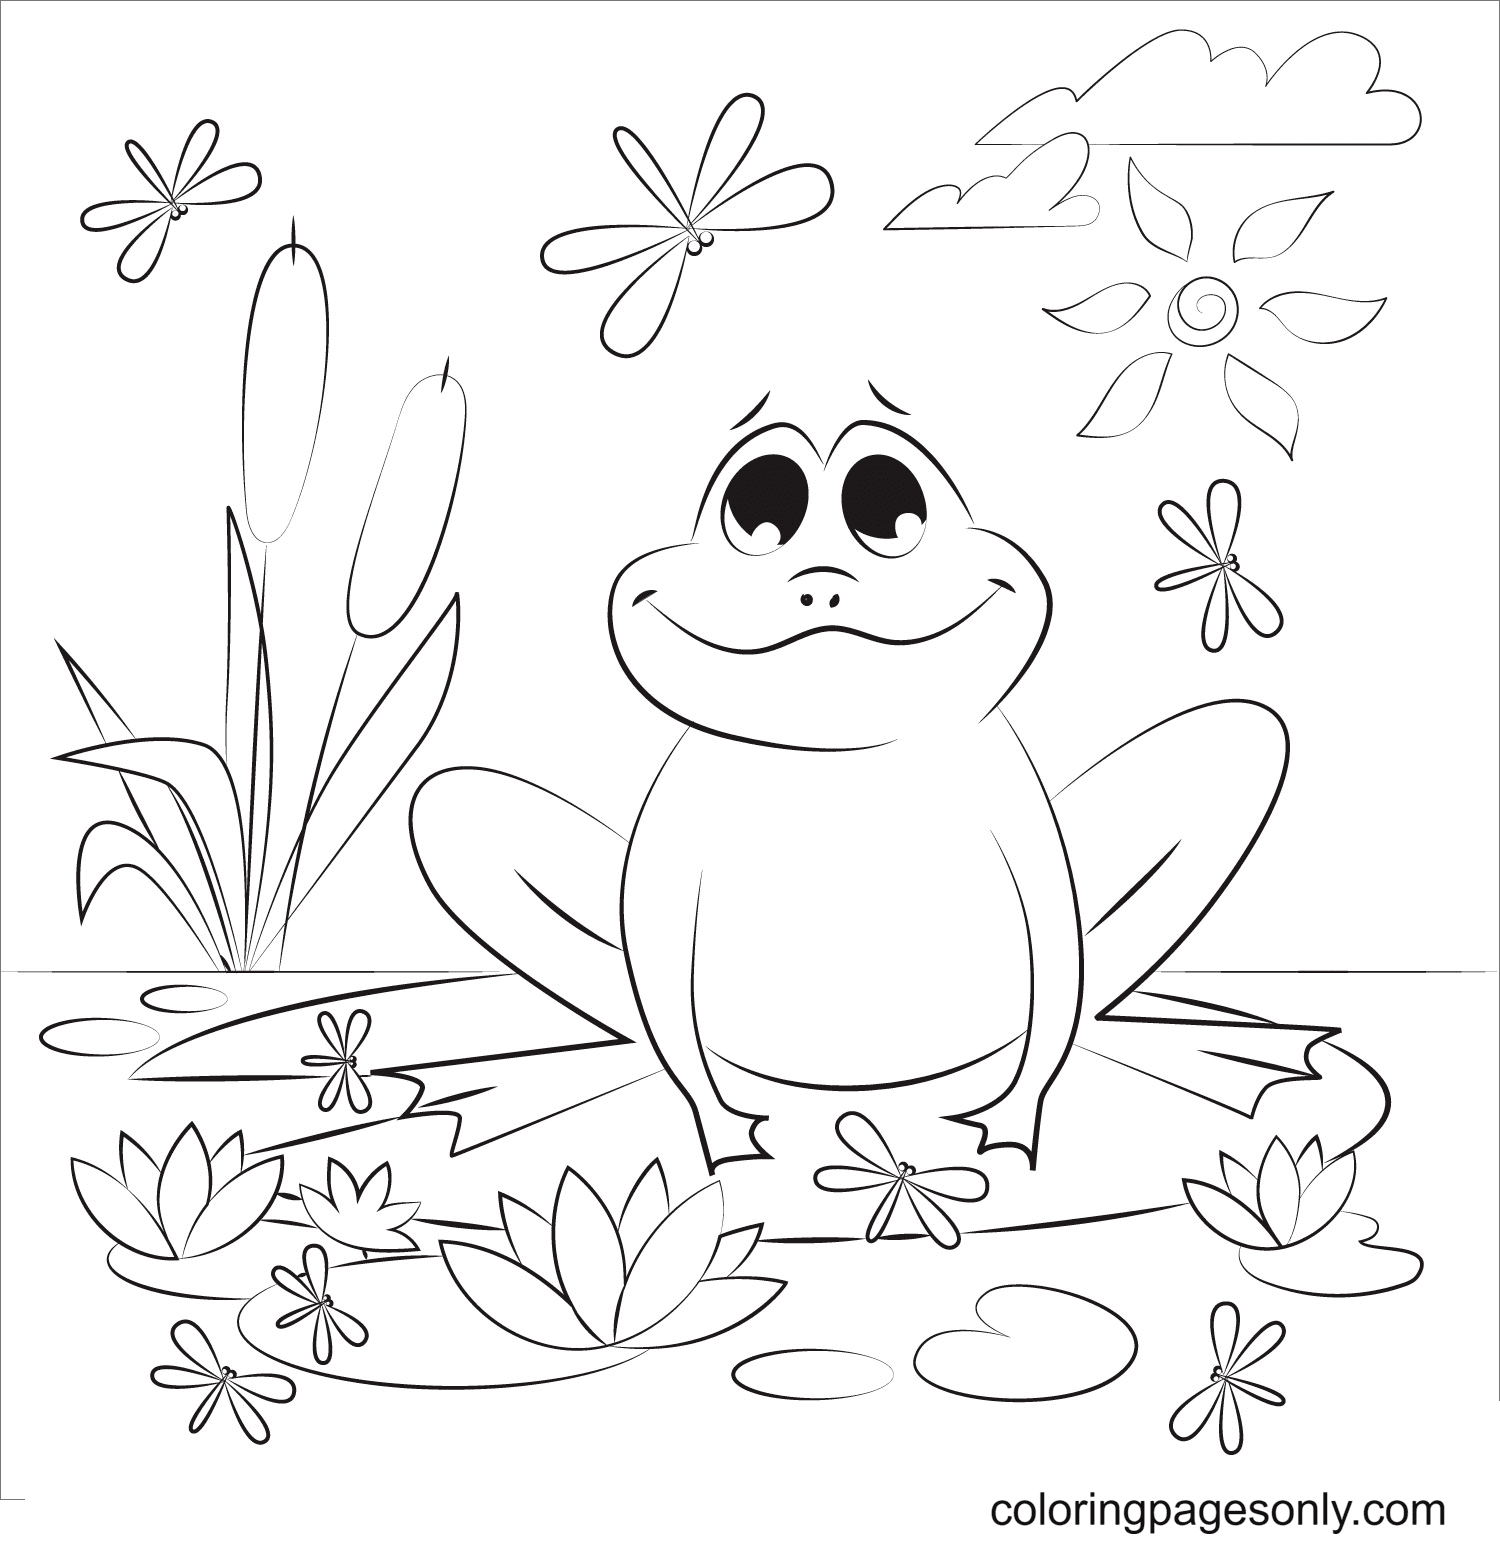 A Beautiful Day for a Baby Frog Coloring Page